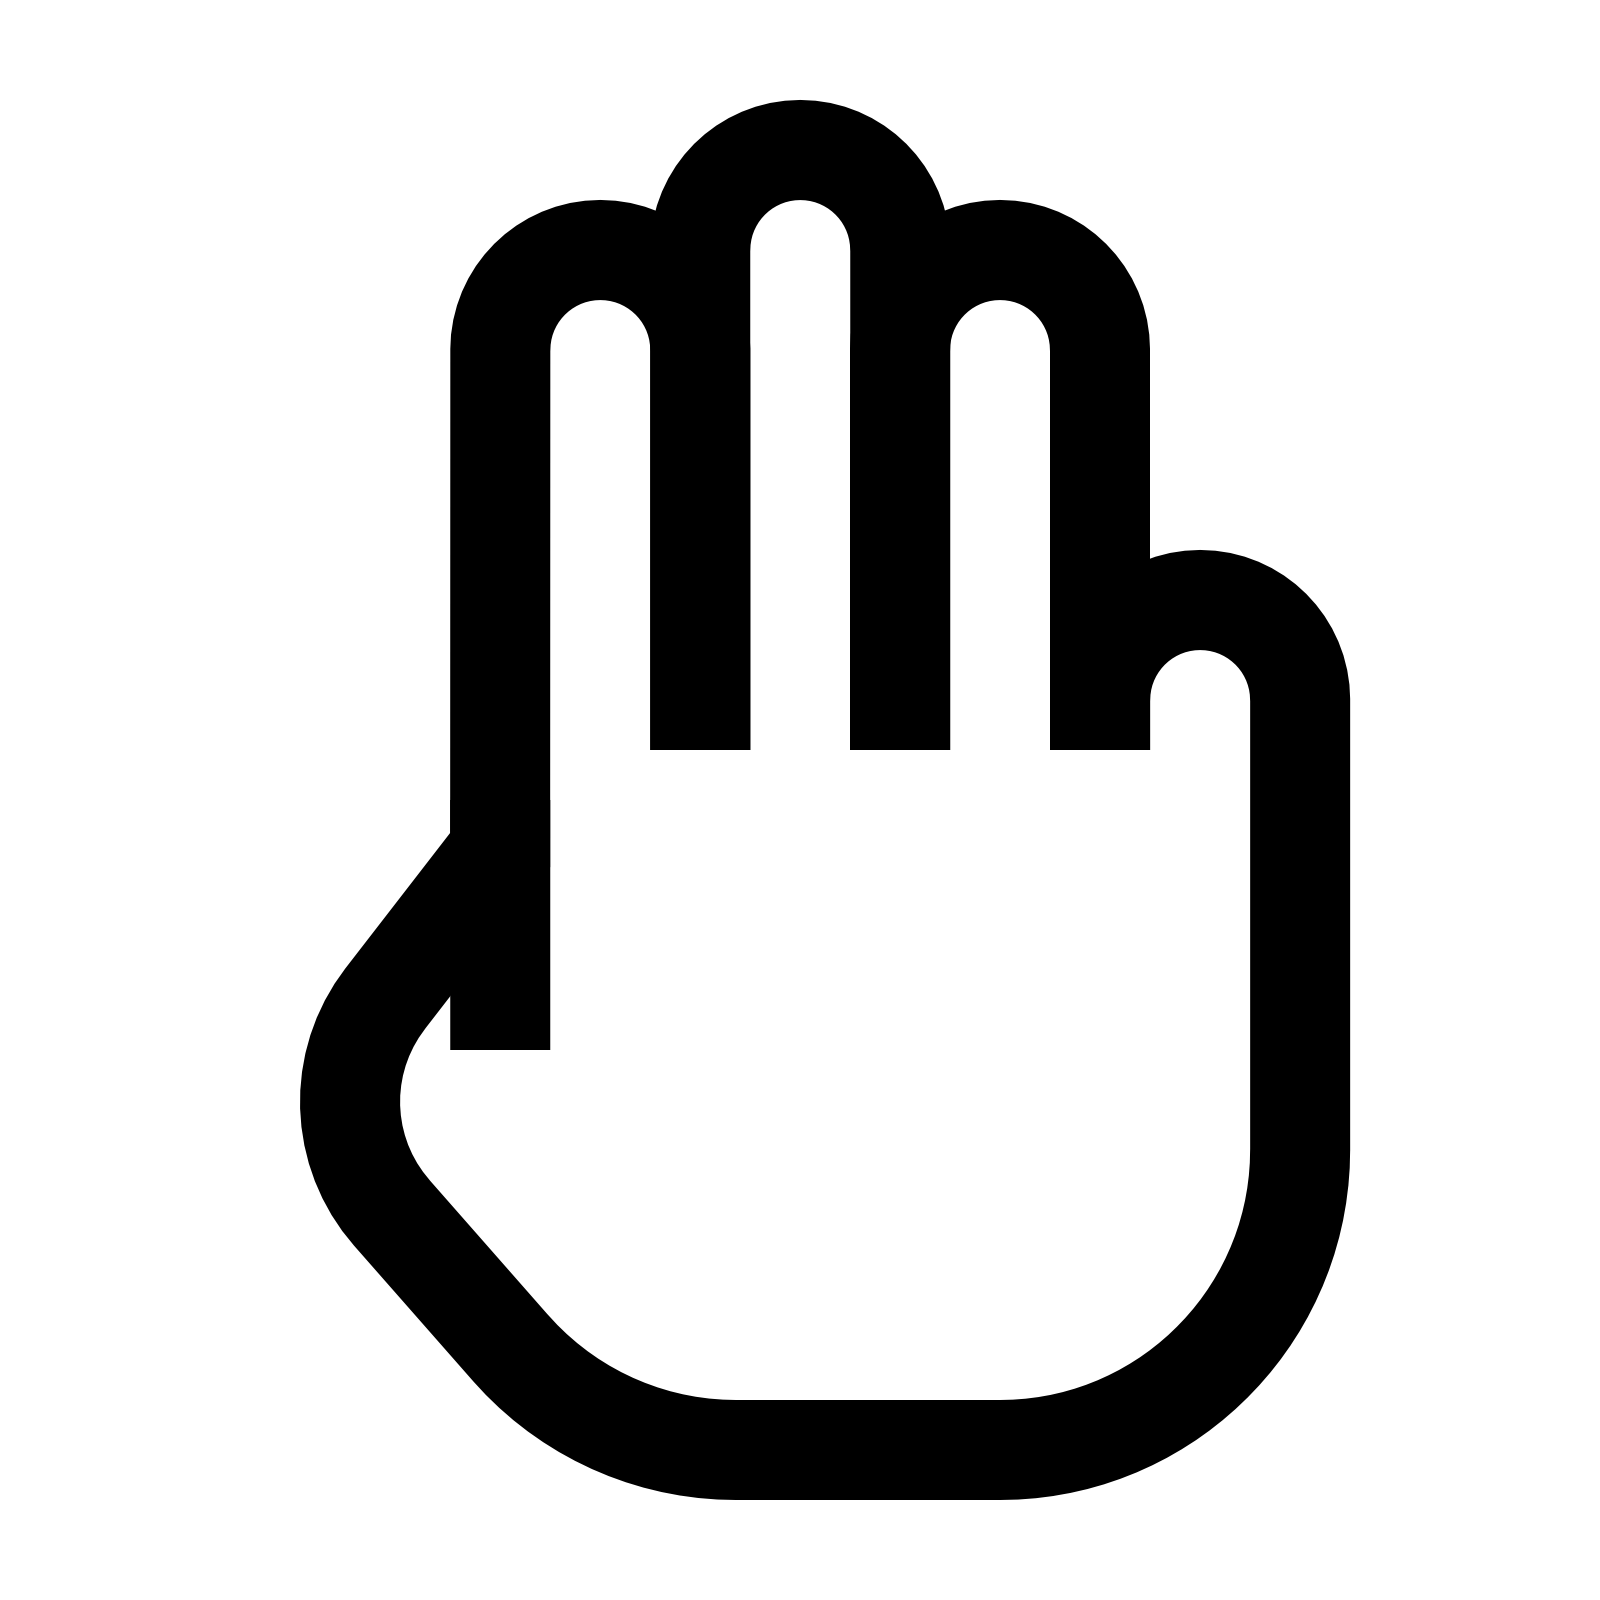 Image of a hand. Fingers clipart finger space